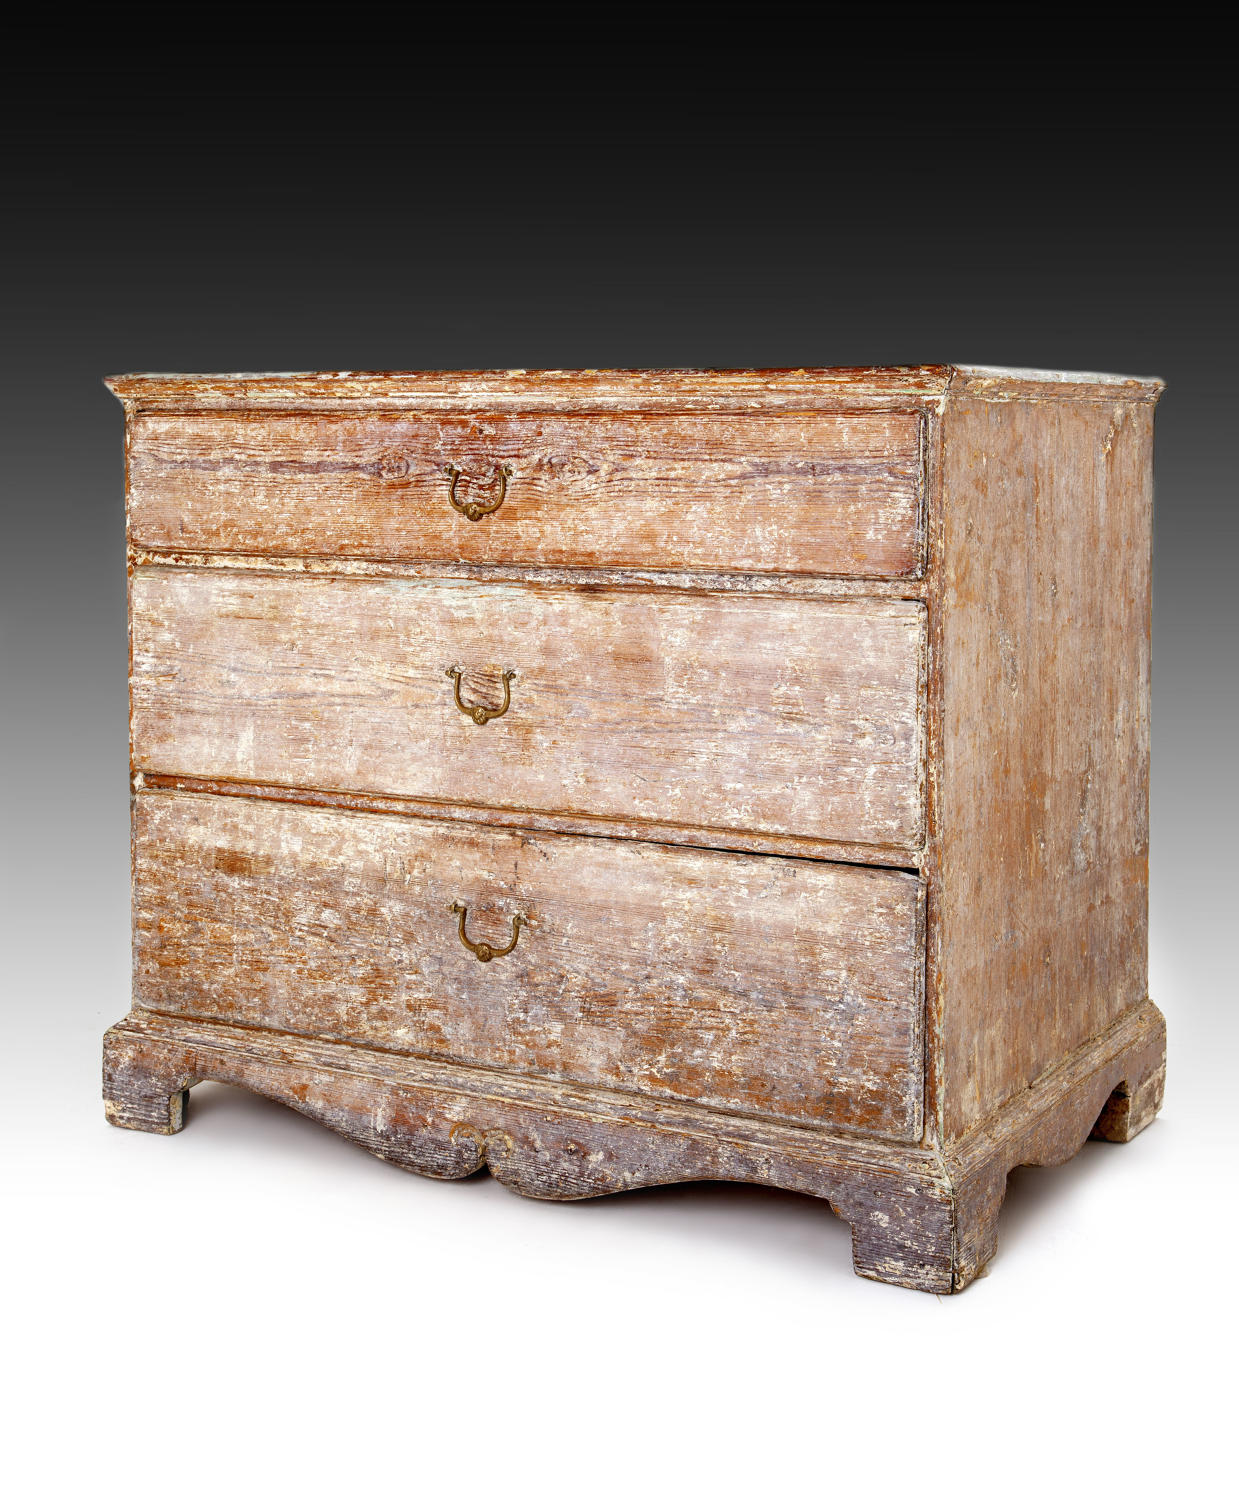 A late 18th century Swedish chest of drawers